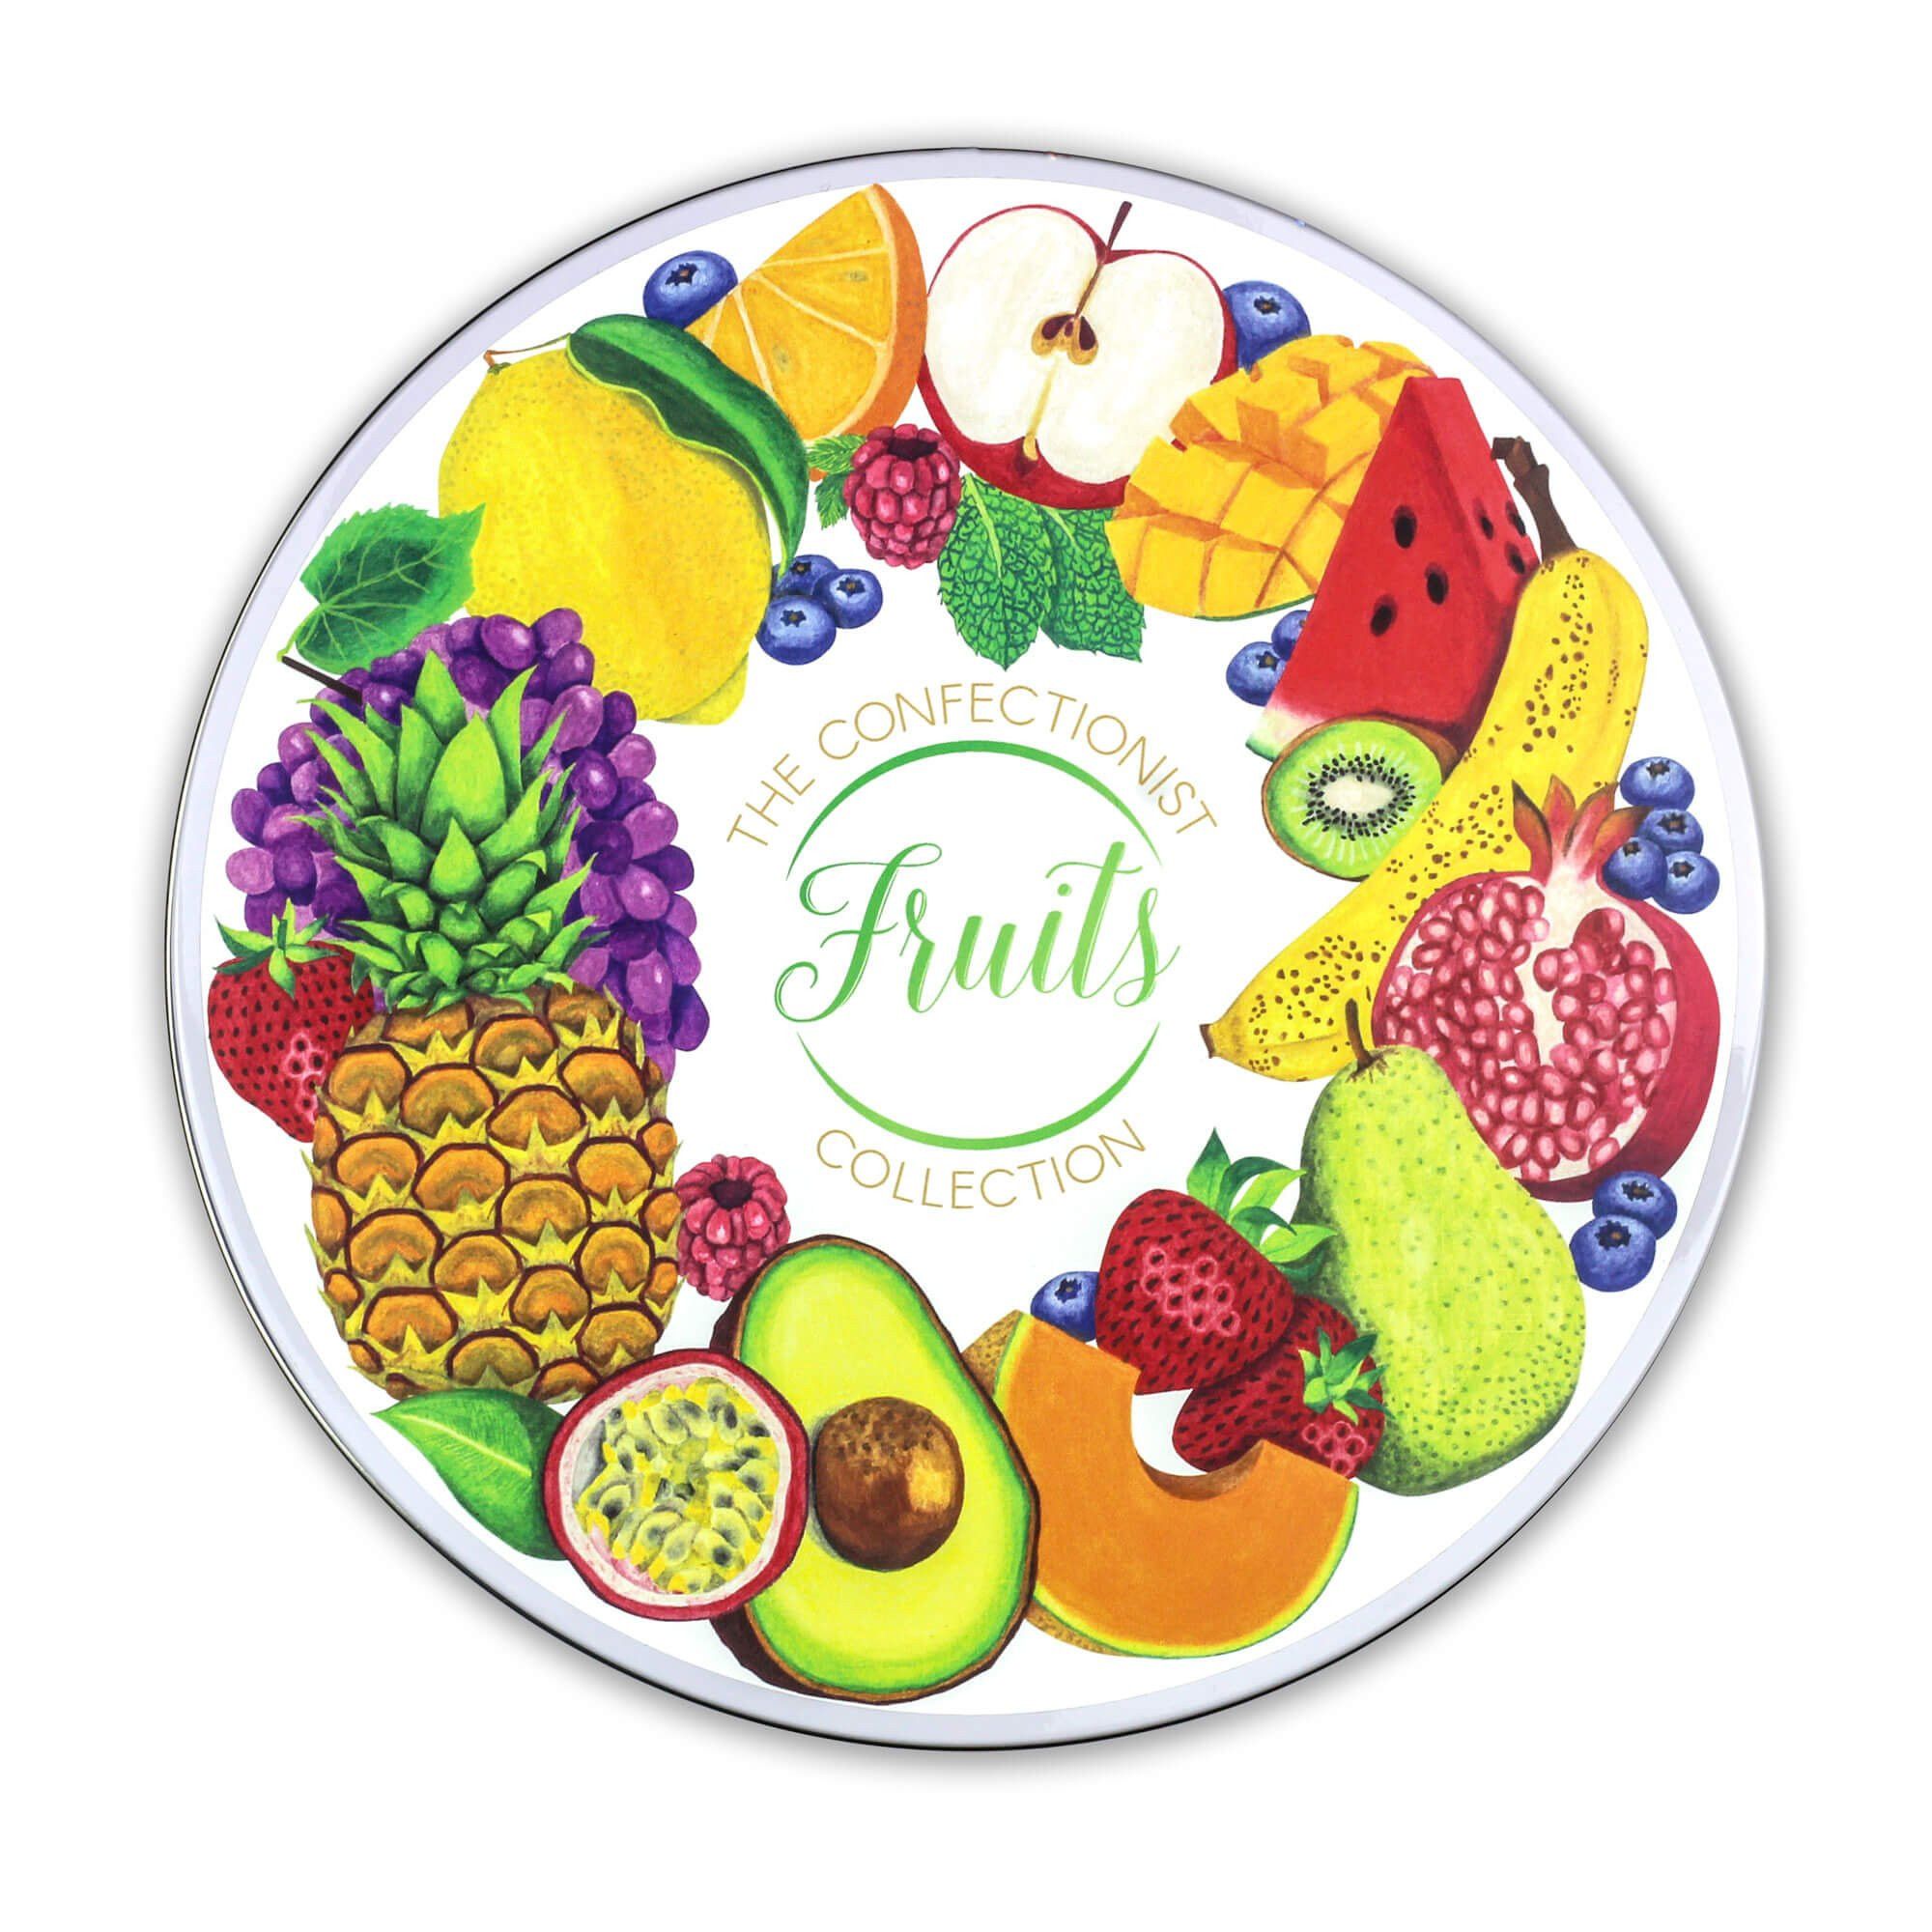 Fruit Biscuit Collection Tin Lid